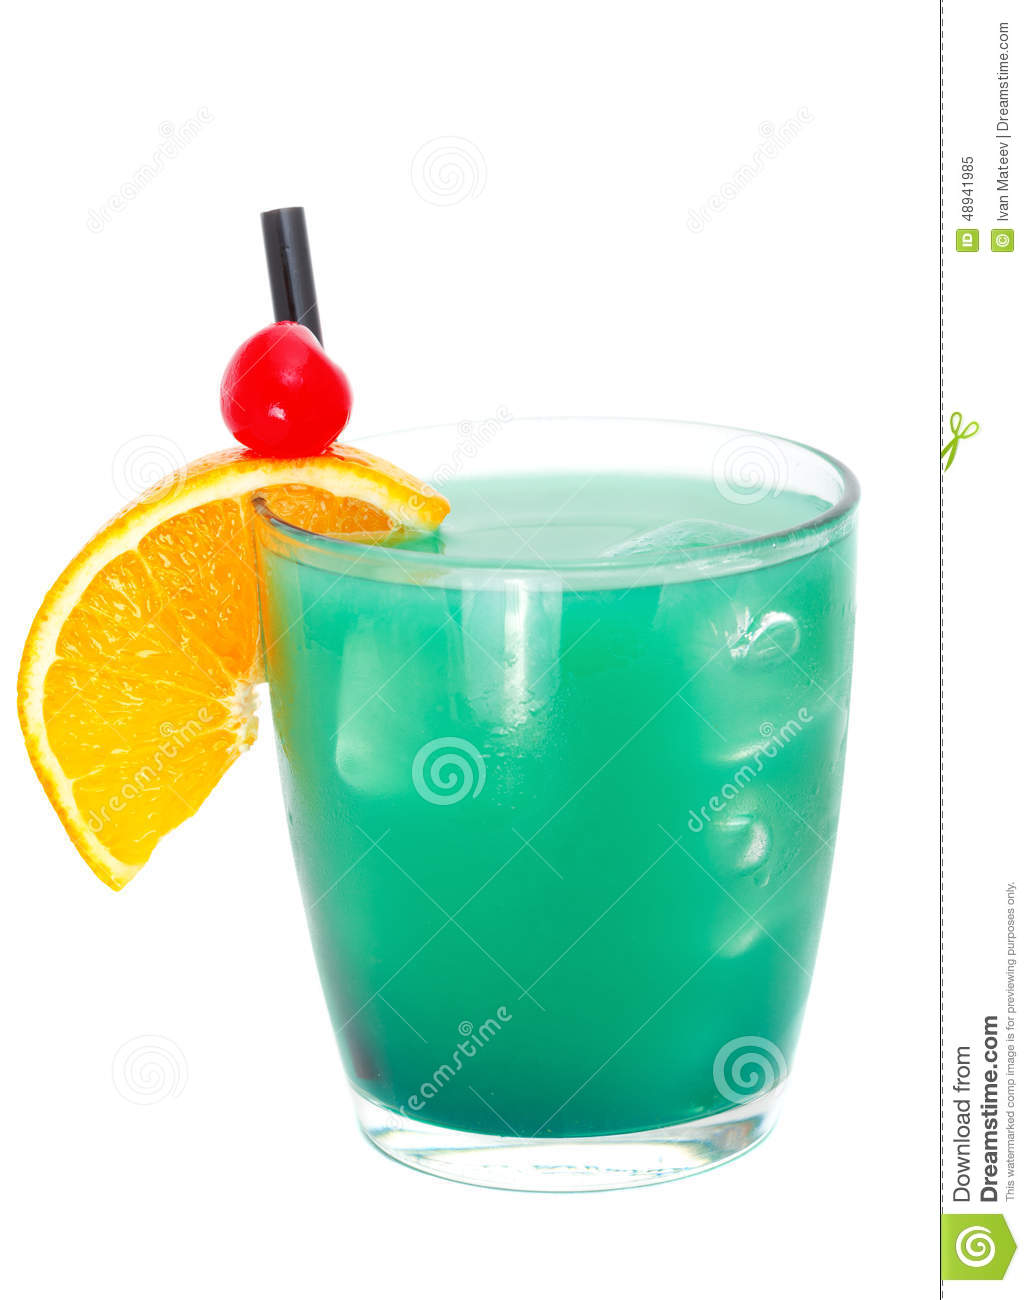 Cocktails collection - Blue Whale